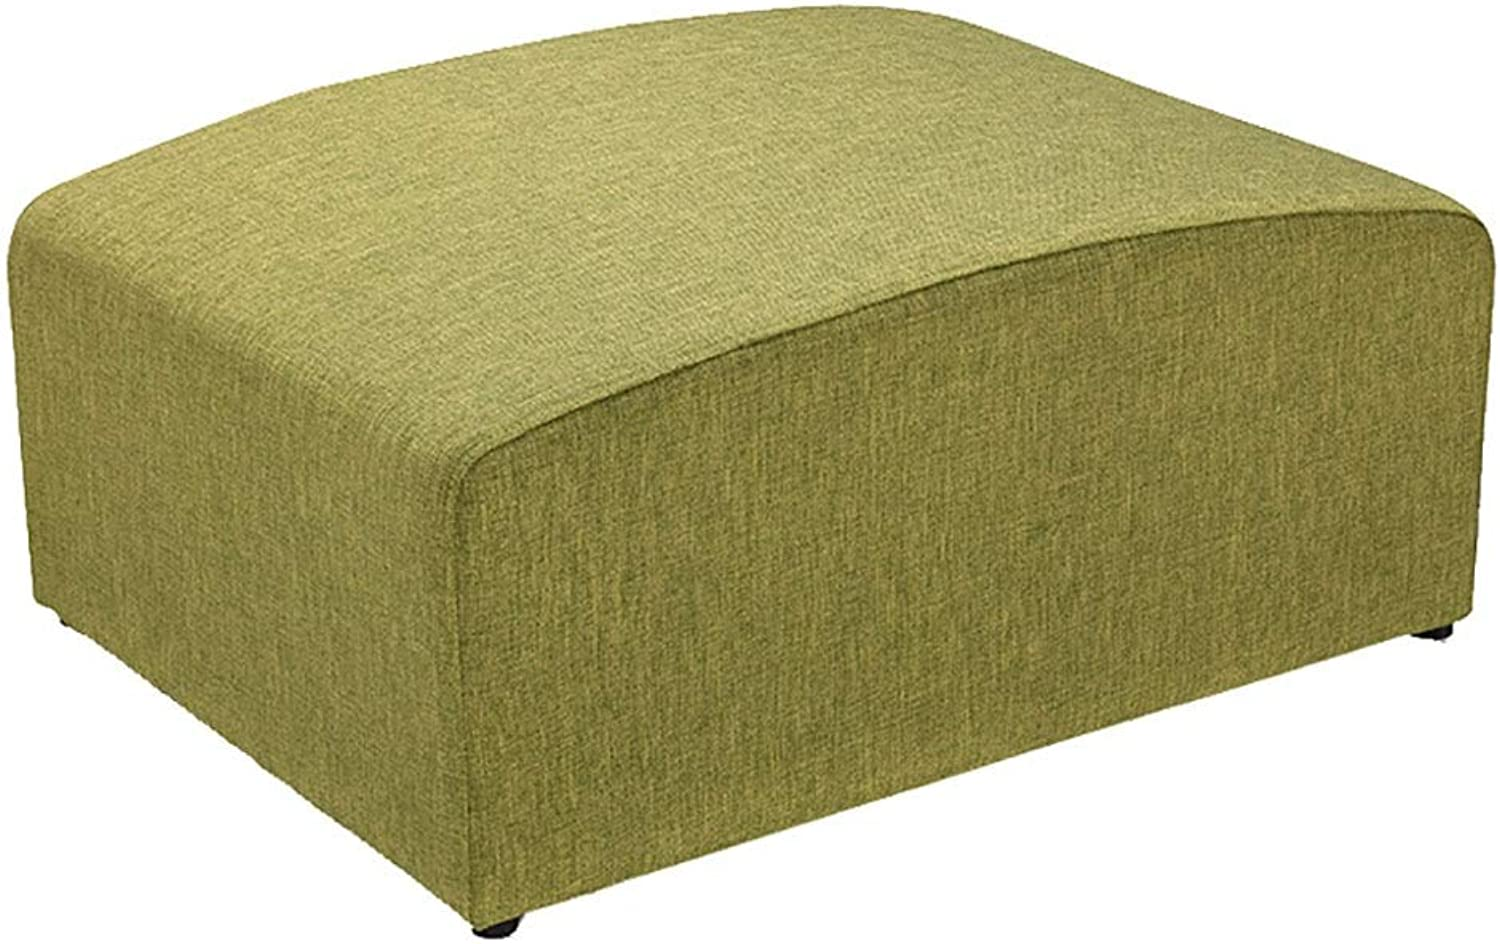 Stool Footstool shoes Bench Removable And Washable Cotton Floor Osman Bench Suitable for Living Room Corridor (color   Grass green, Size   46x66x32cm)